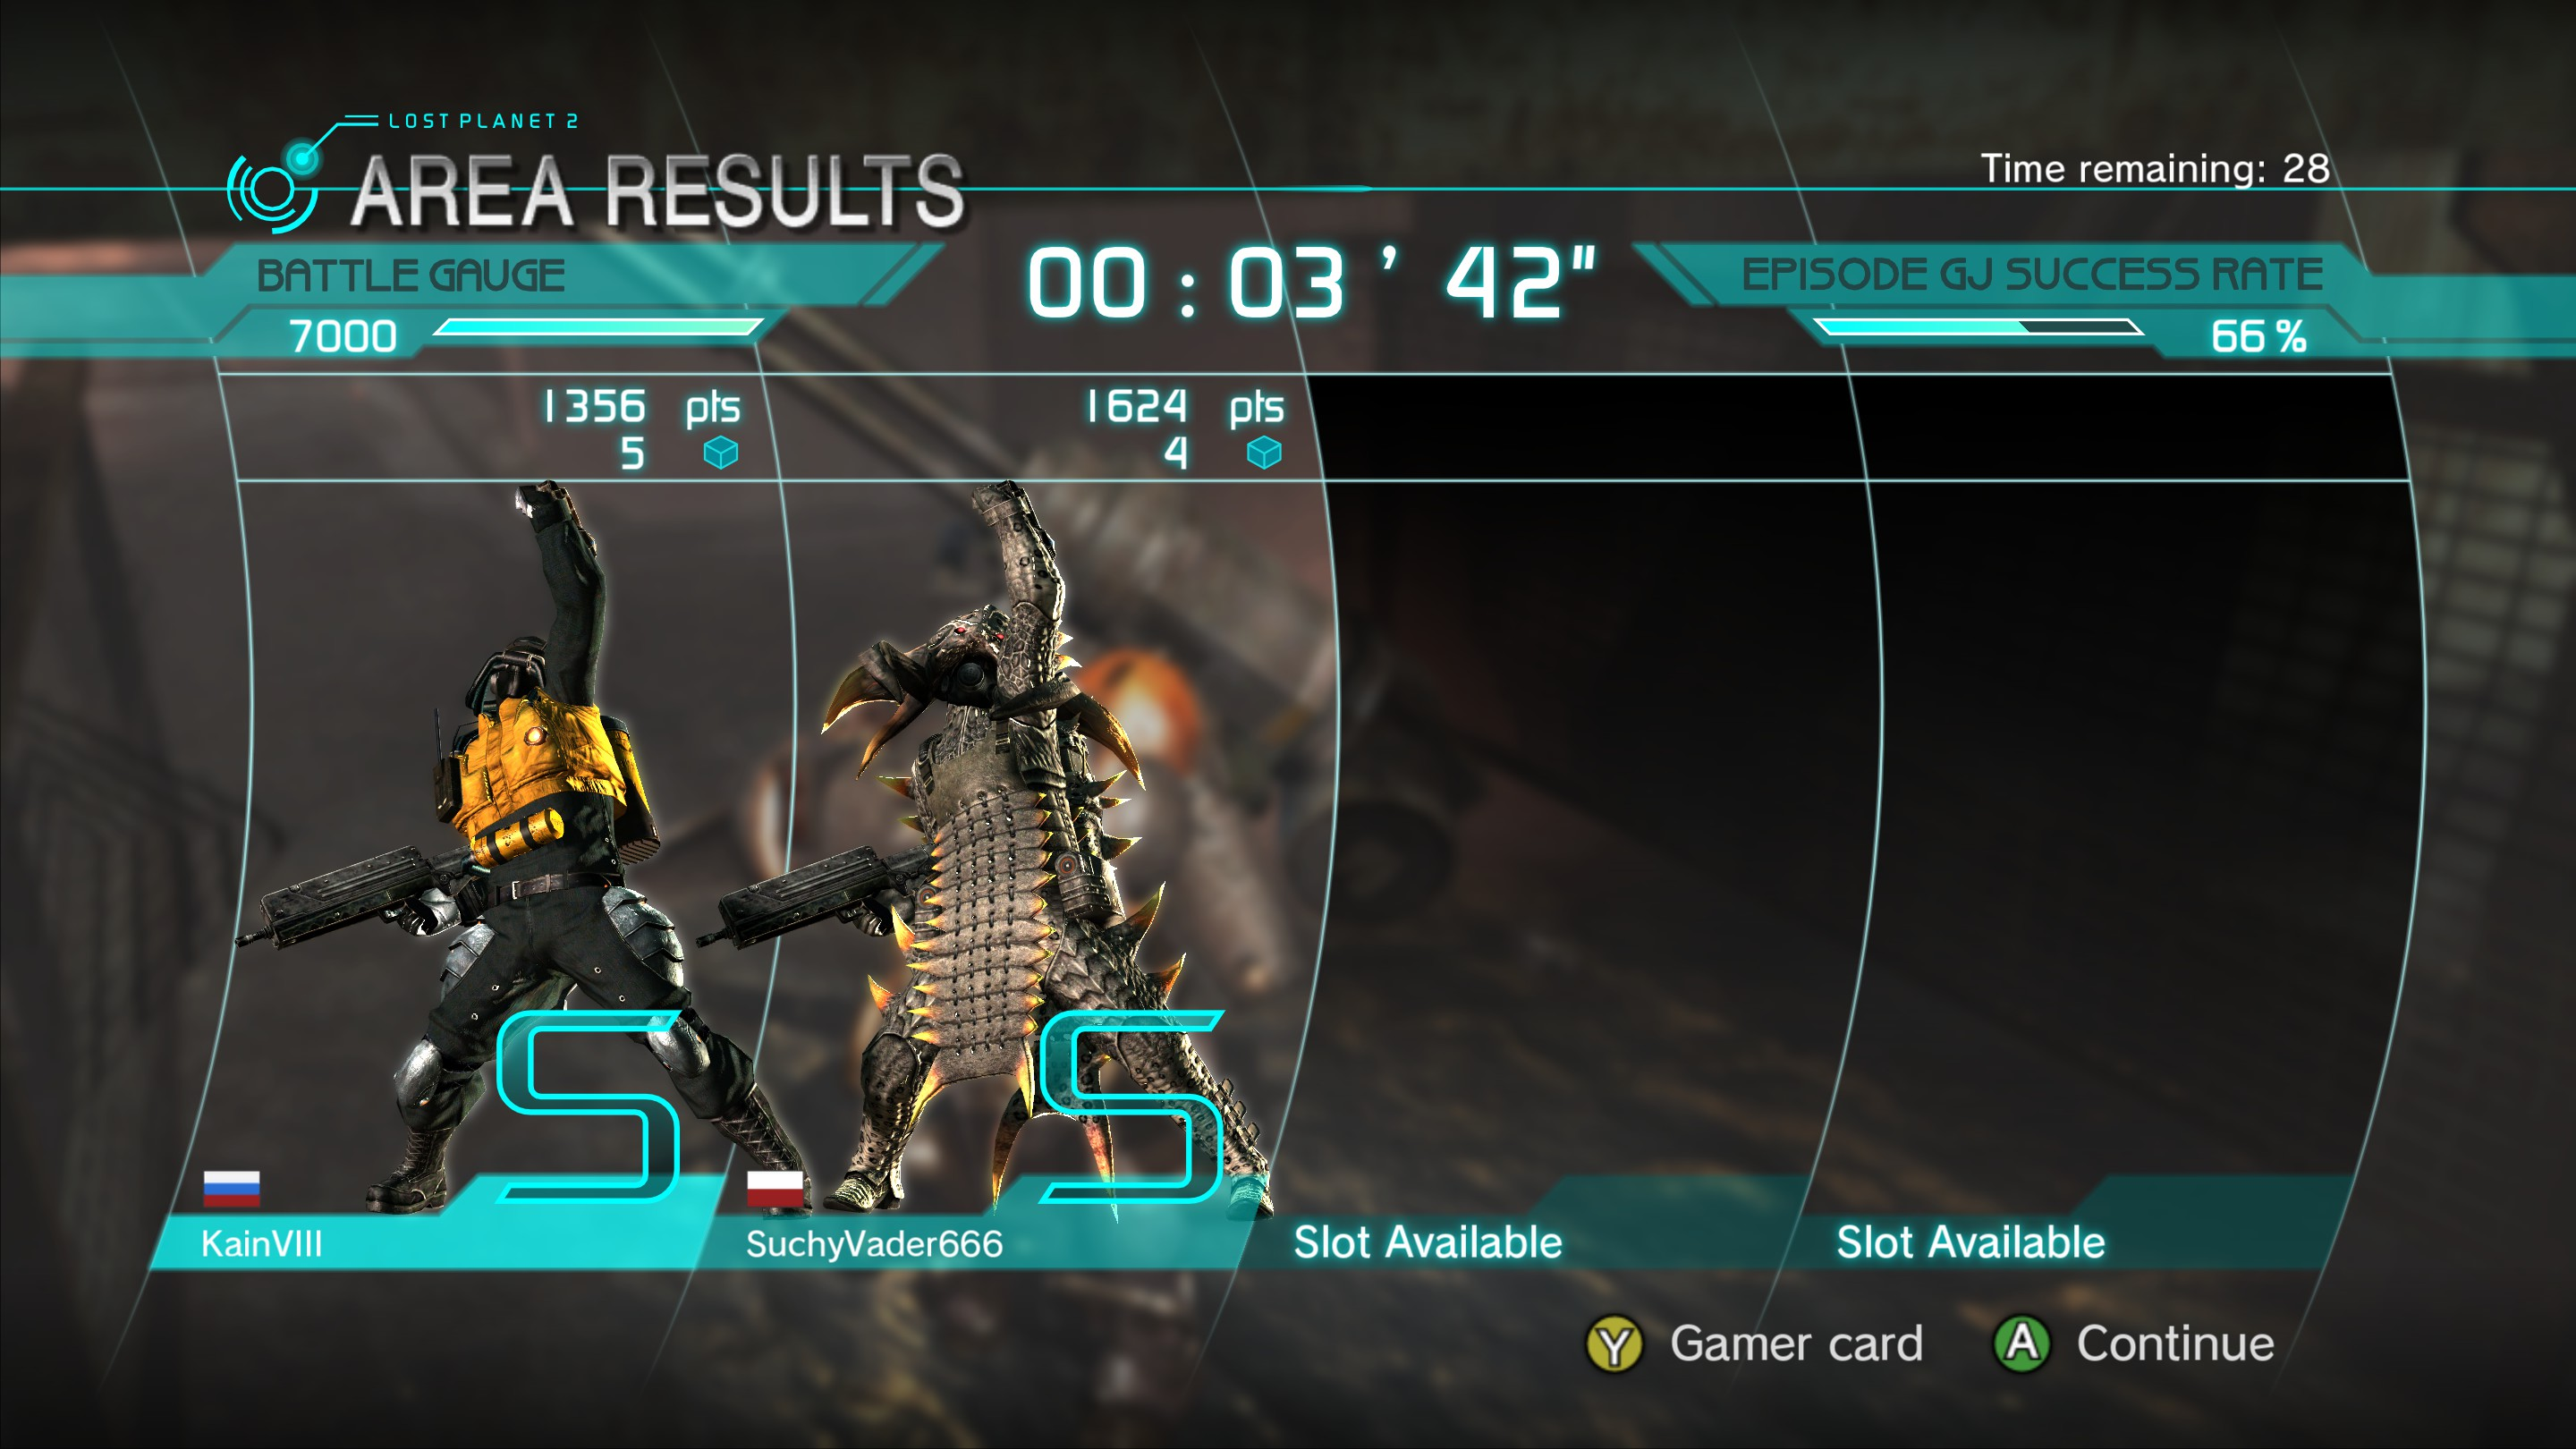 Lost planet 2 slot machine passwords pc not working free slot games gold rush